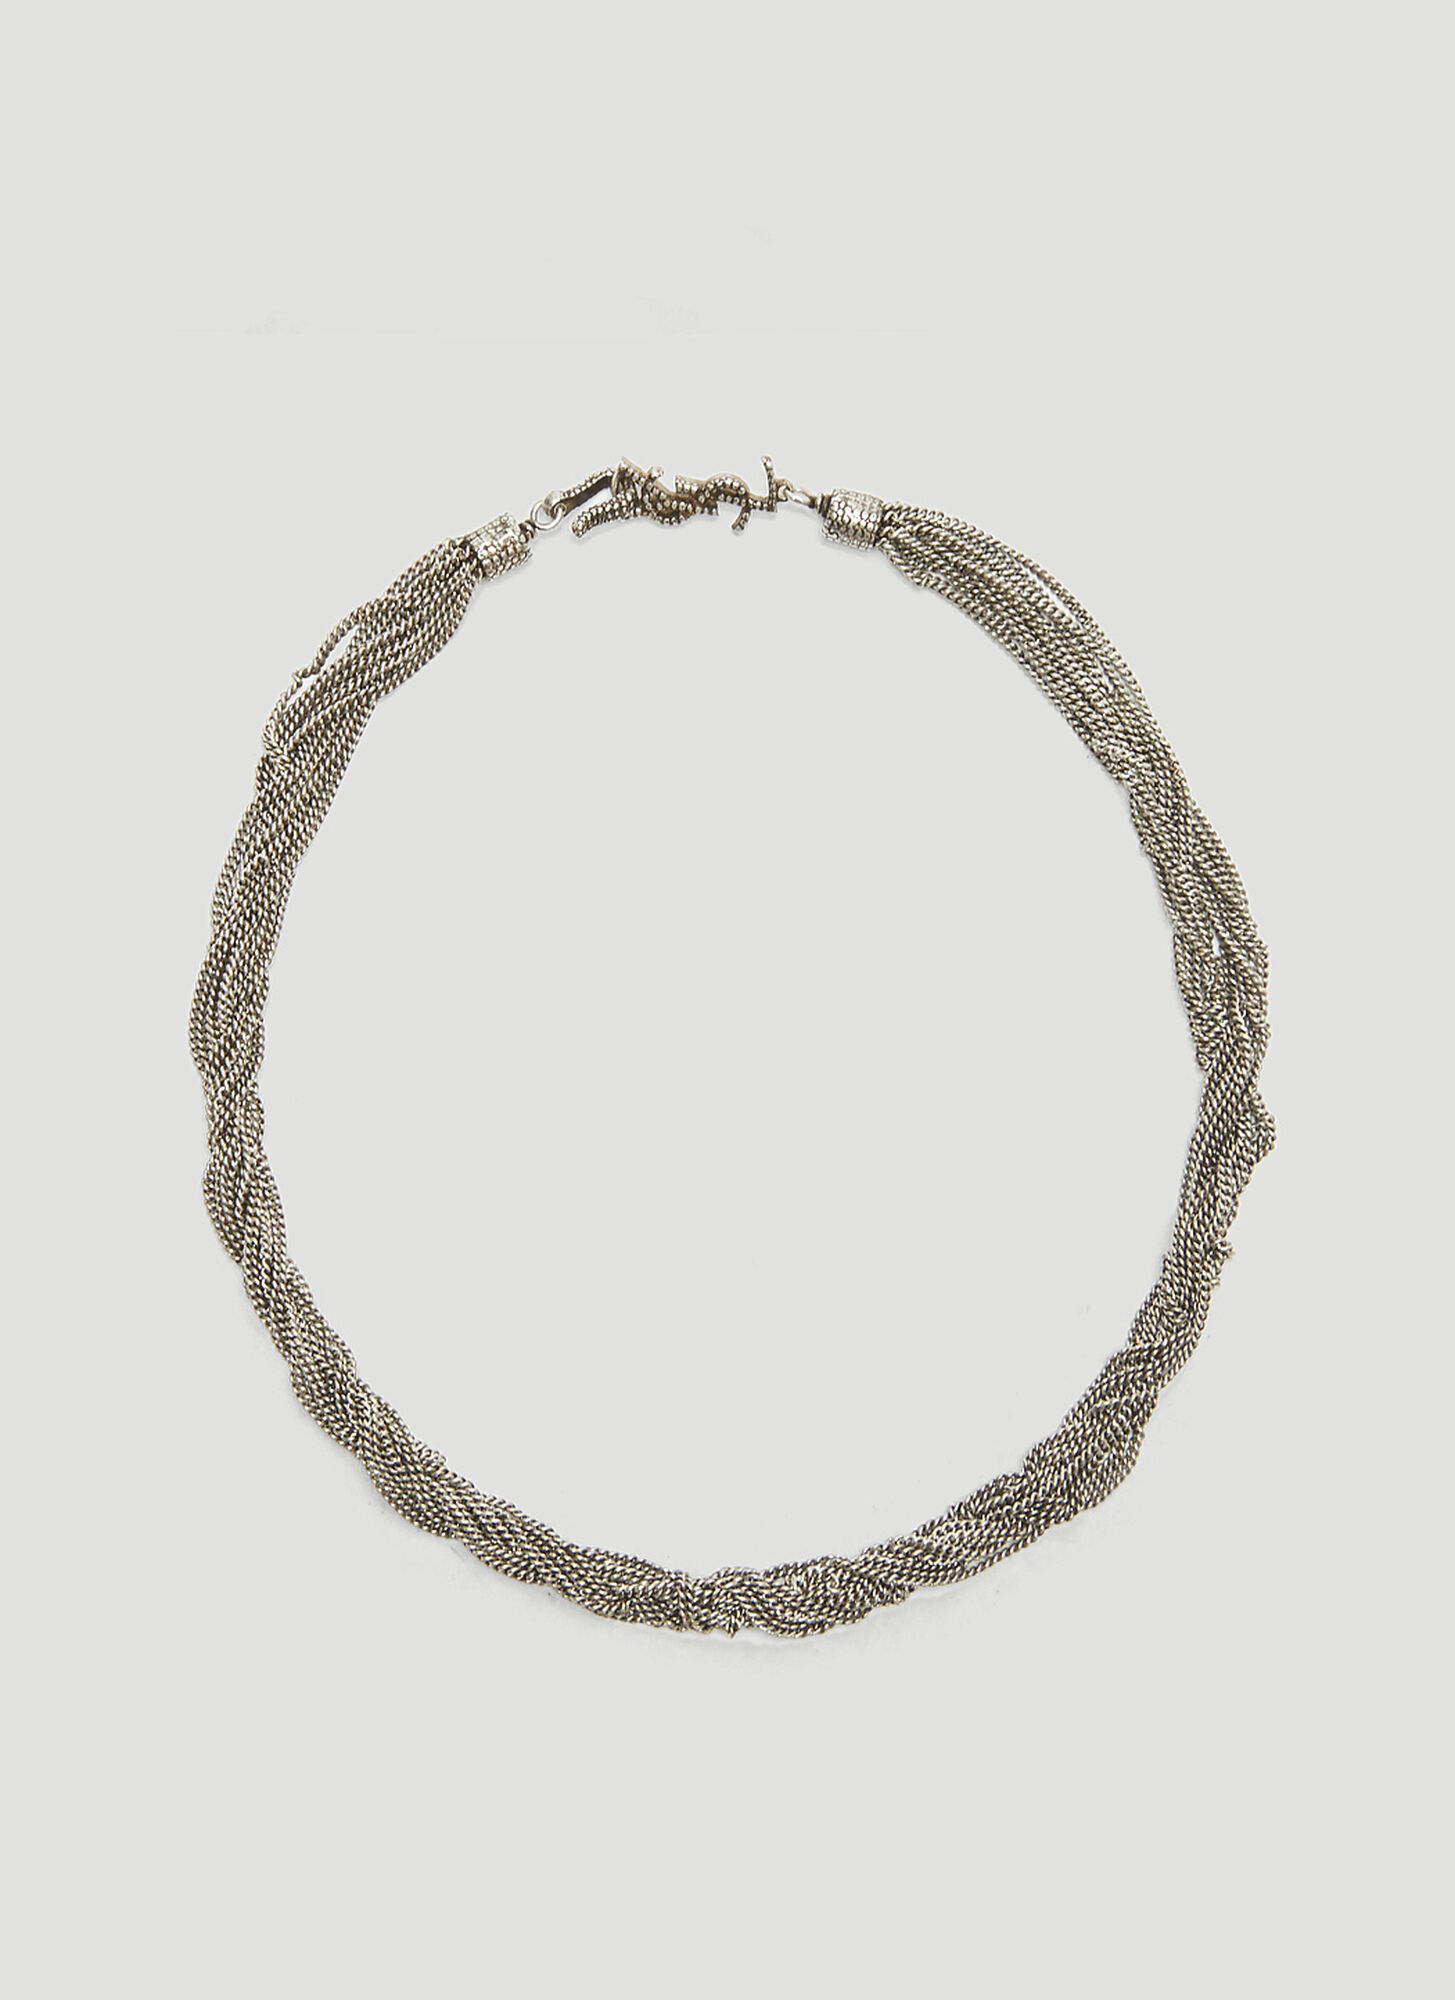 Saint Laurent Loulou Twisted Chain Choker Necklace in Silver